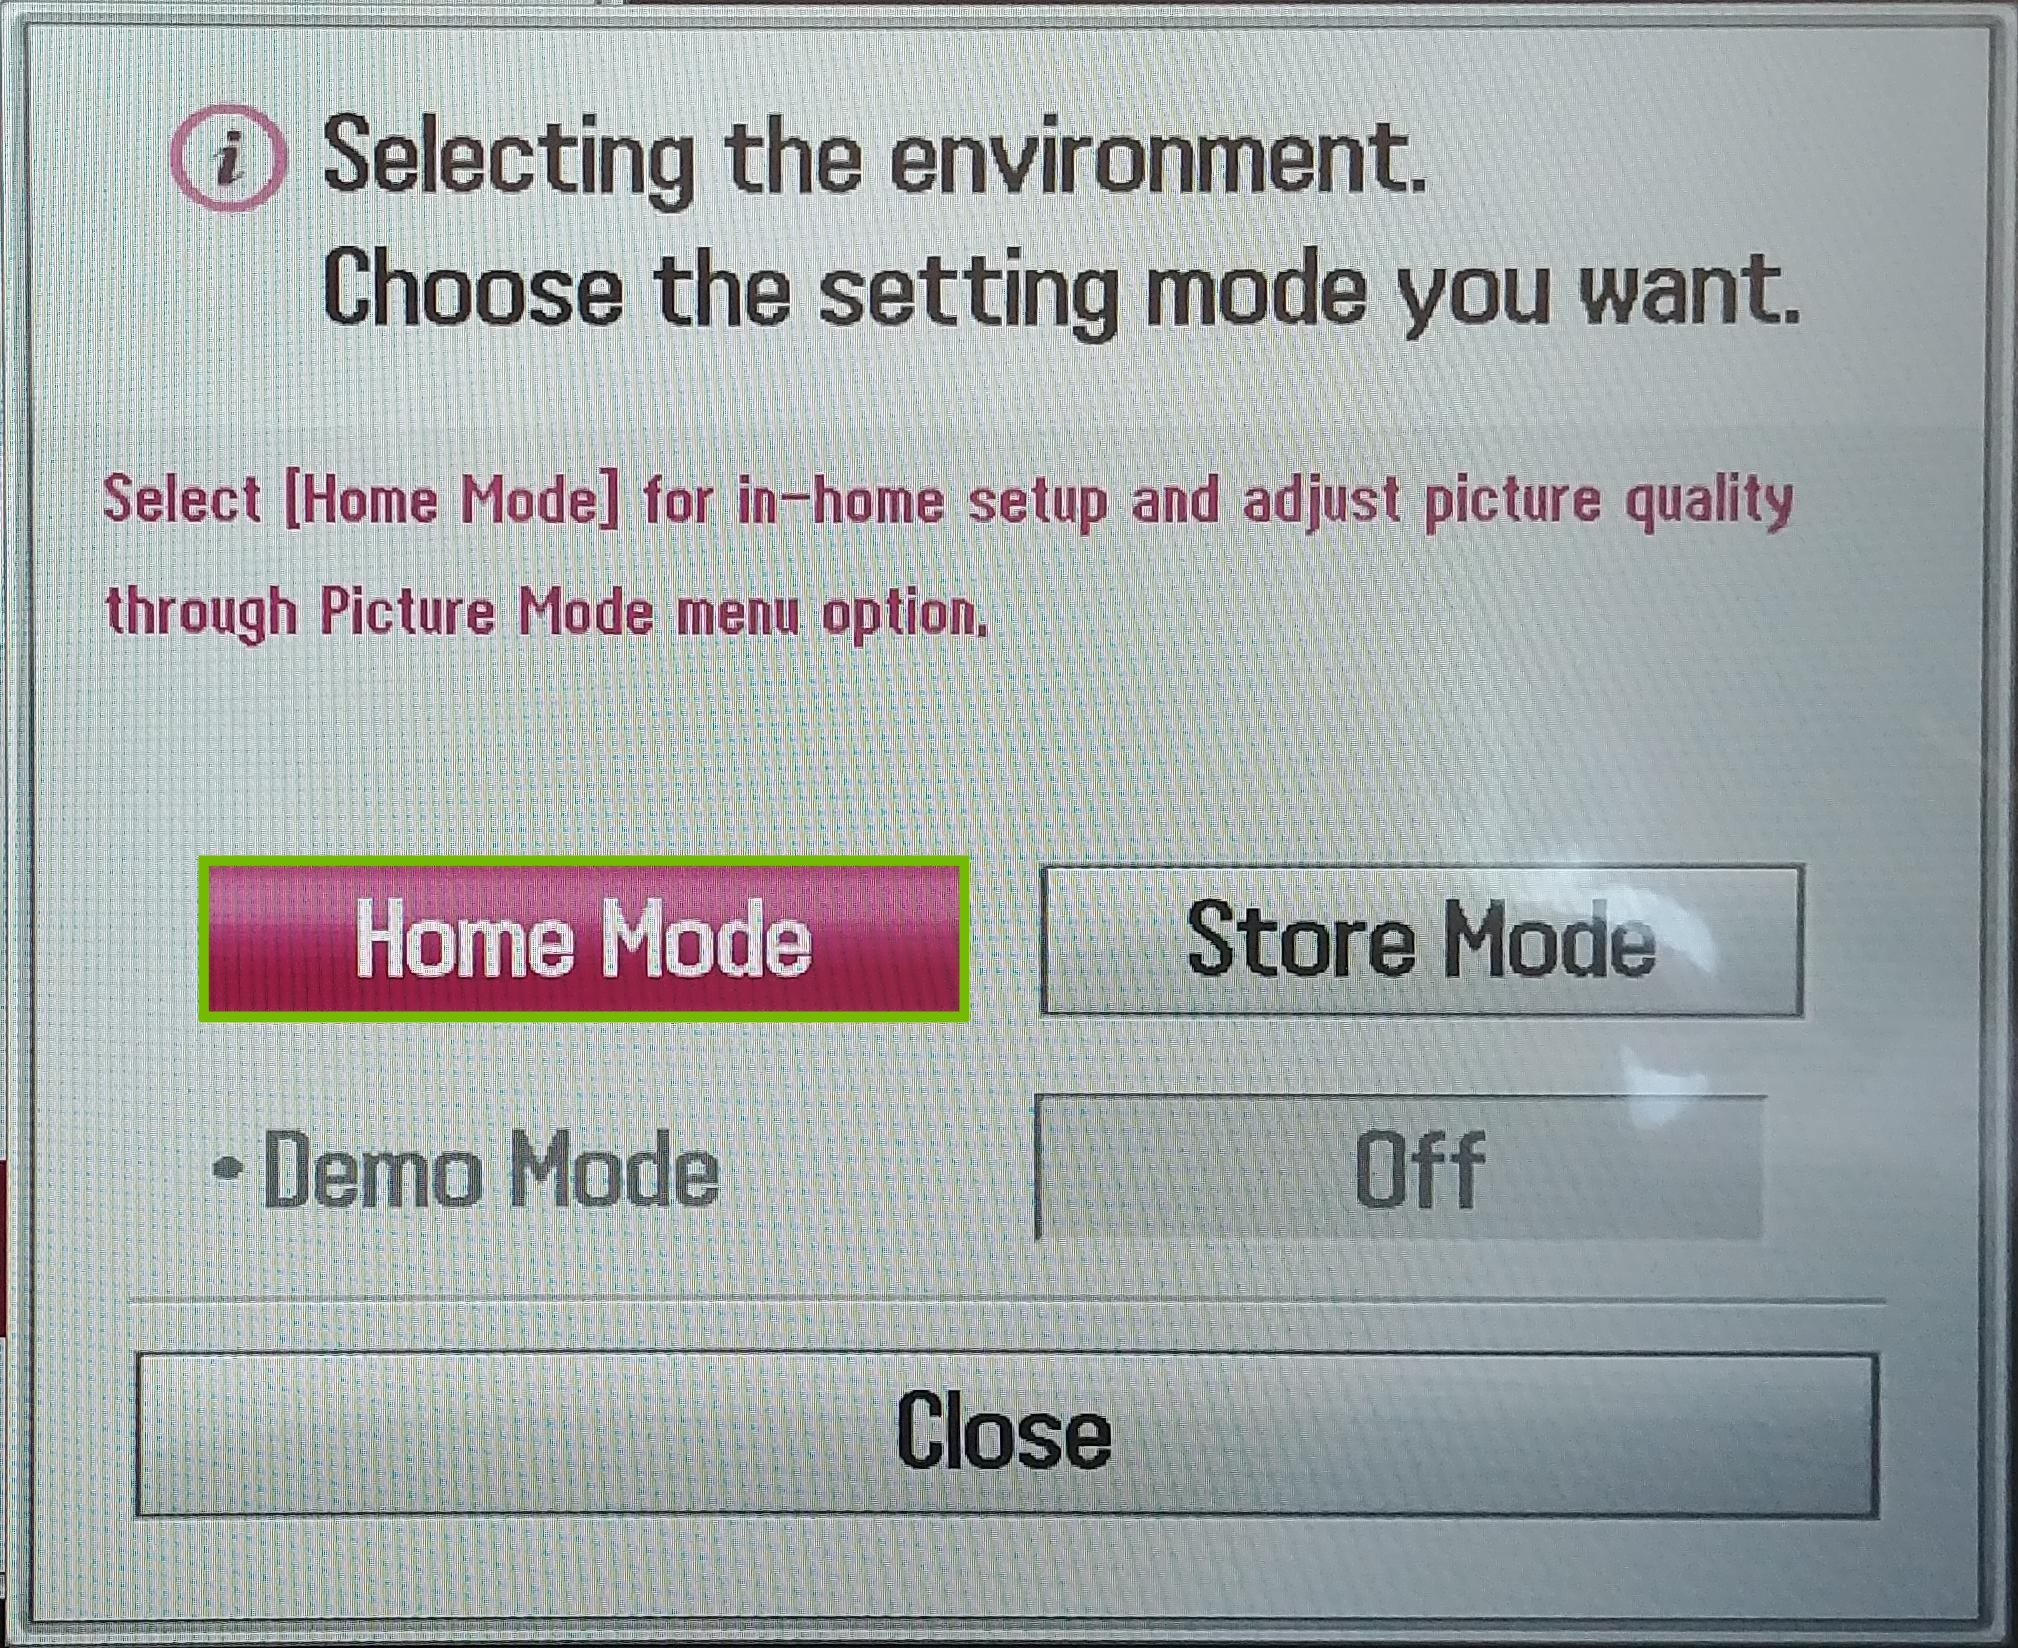 Mode Settings with Home Mode highlighted.